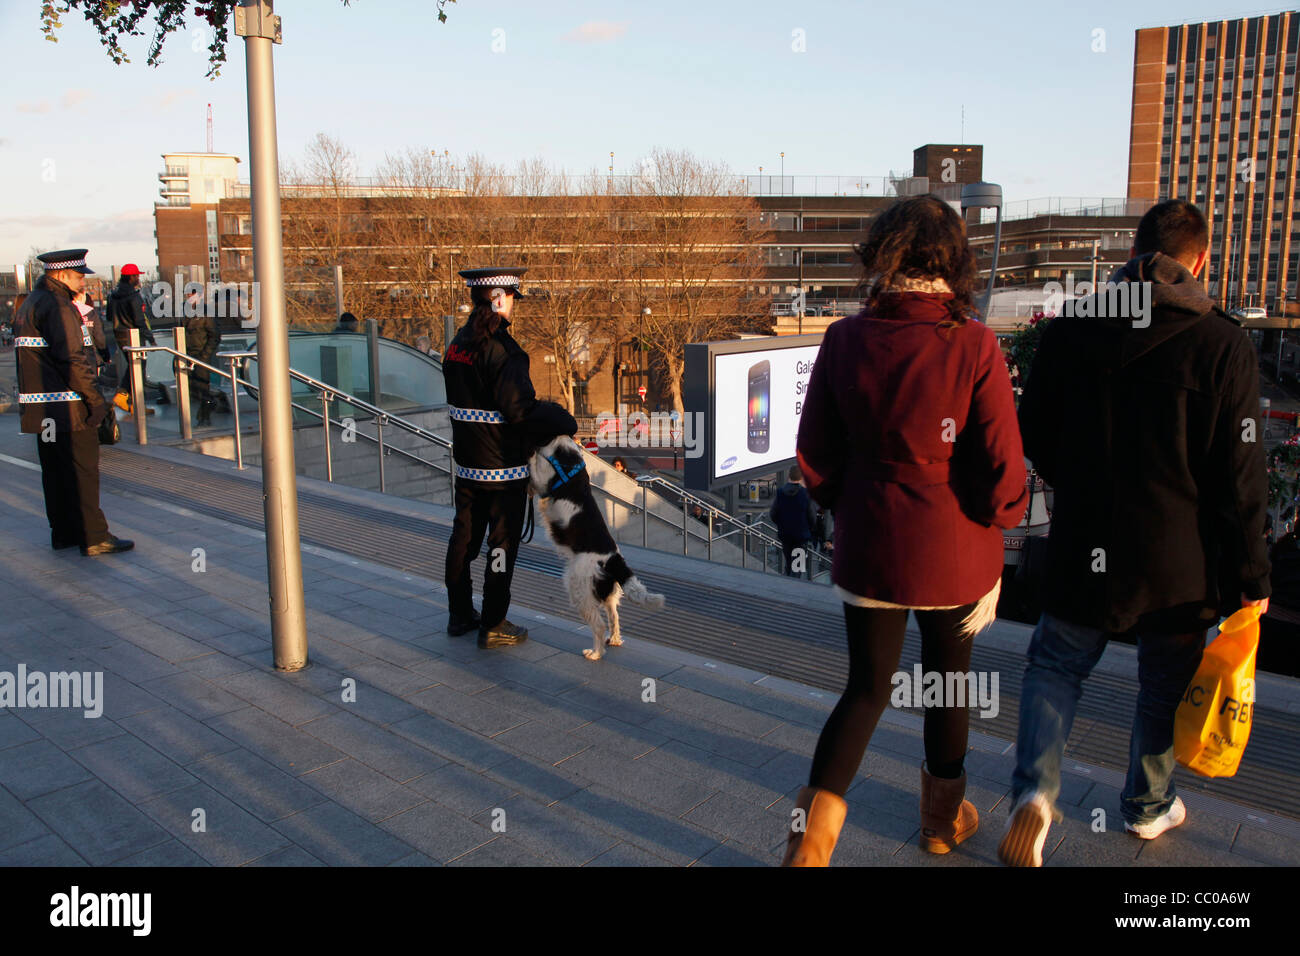 Trained dogs with security staff outside Westfield shopping mall in Stratford City, by the London 2012 Olympic Park, Stock Photo